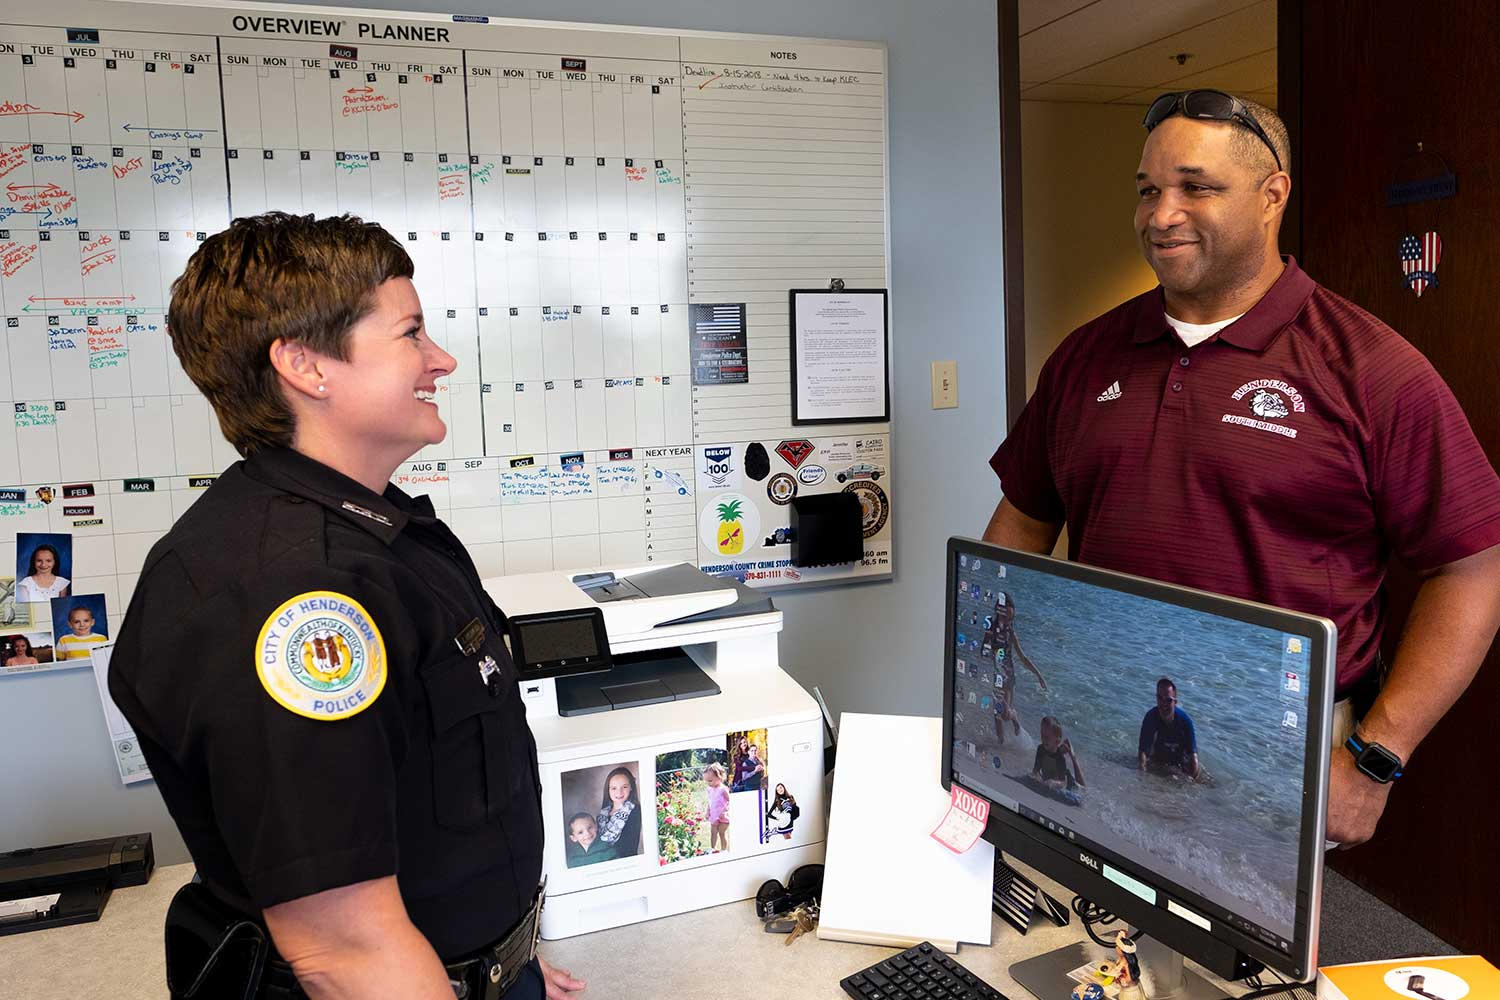 Henderson Police Officer Jennifer Richmond talks with Maj. Jermaine Pointer in her office at the Henderson Police Department.